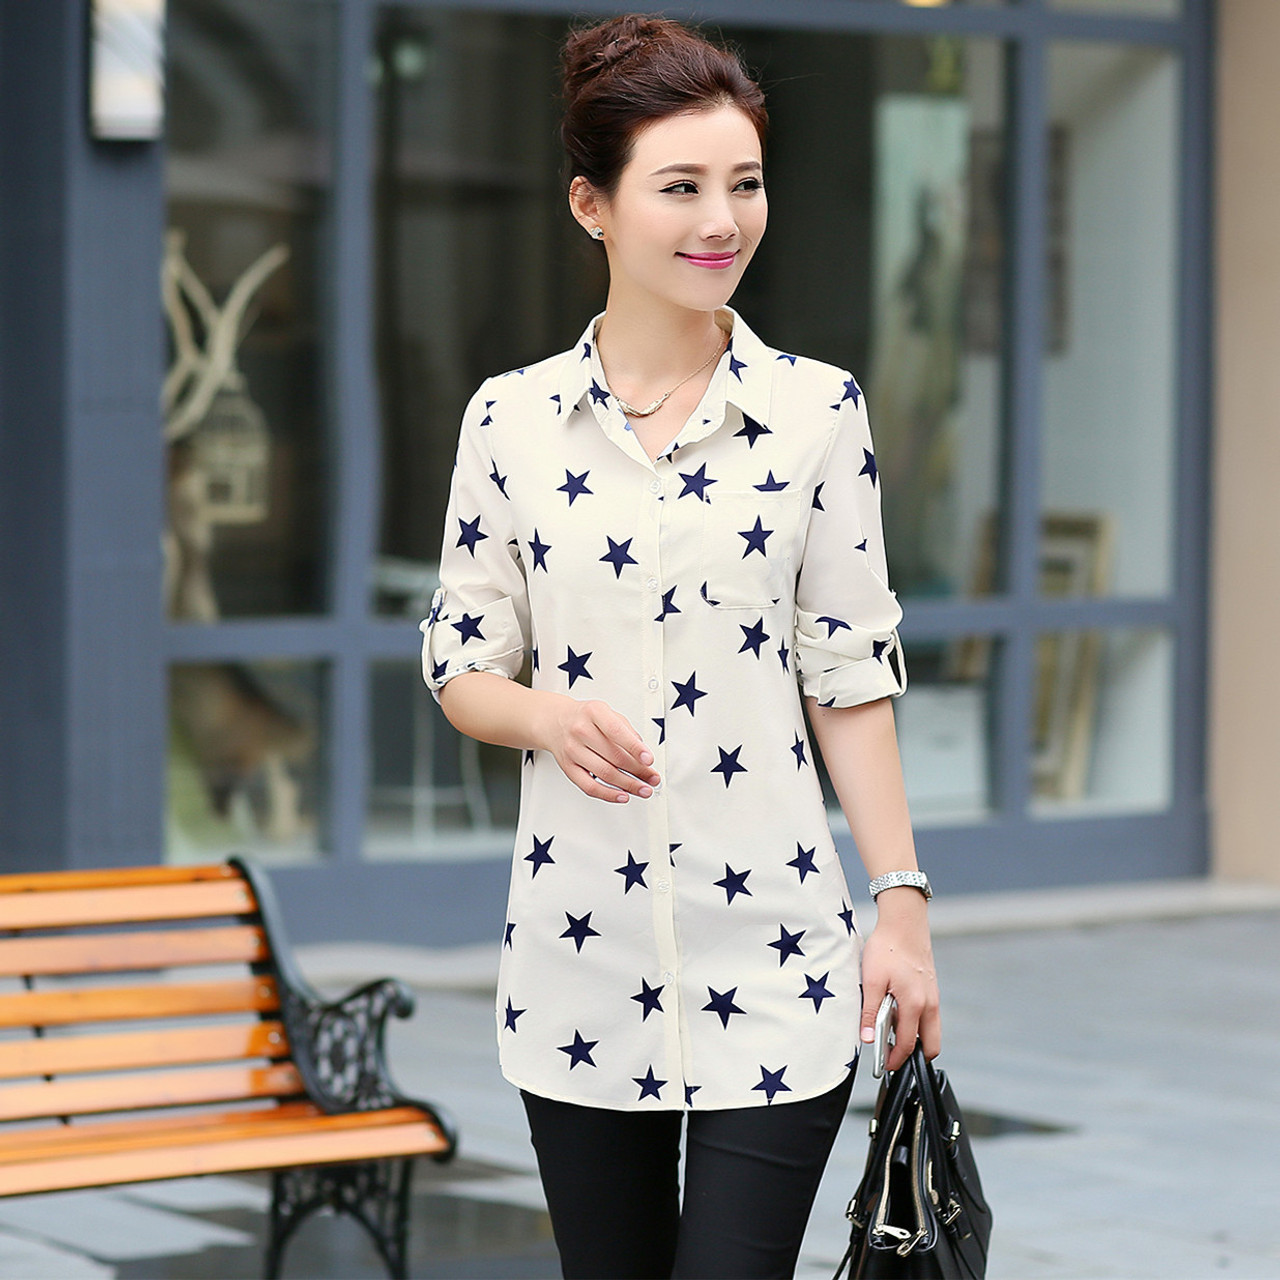 8b0f258dad9 ... New Fashion Print Blouses Women Long Style Shirts 2018 Cotton Ladies  Tops Long Sleeve Blusas Femininas ...